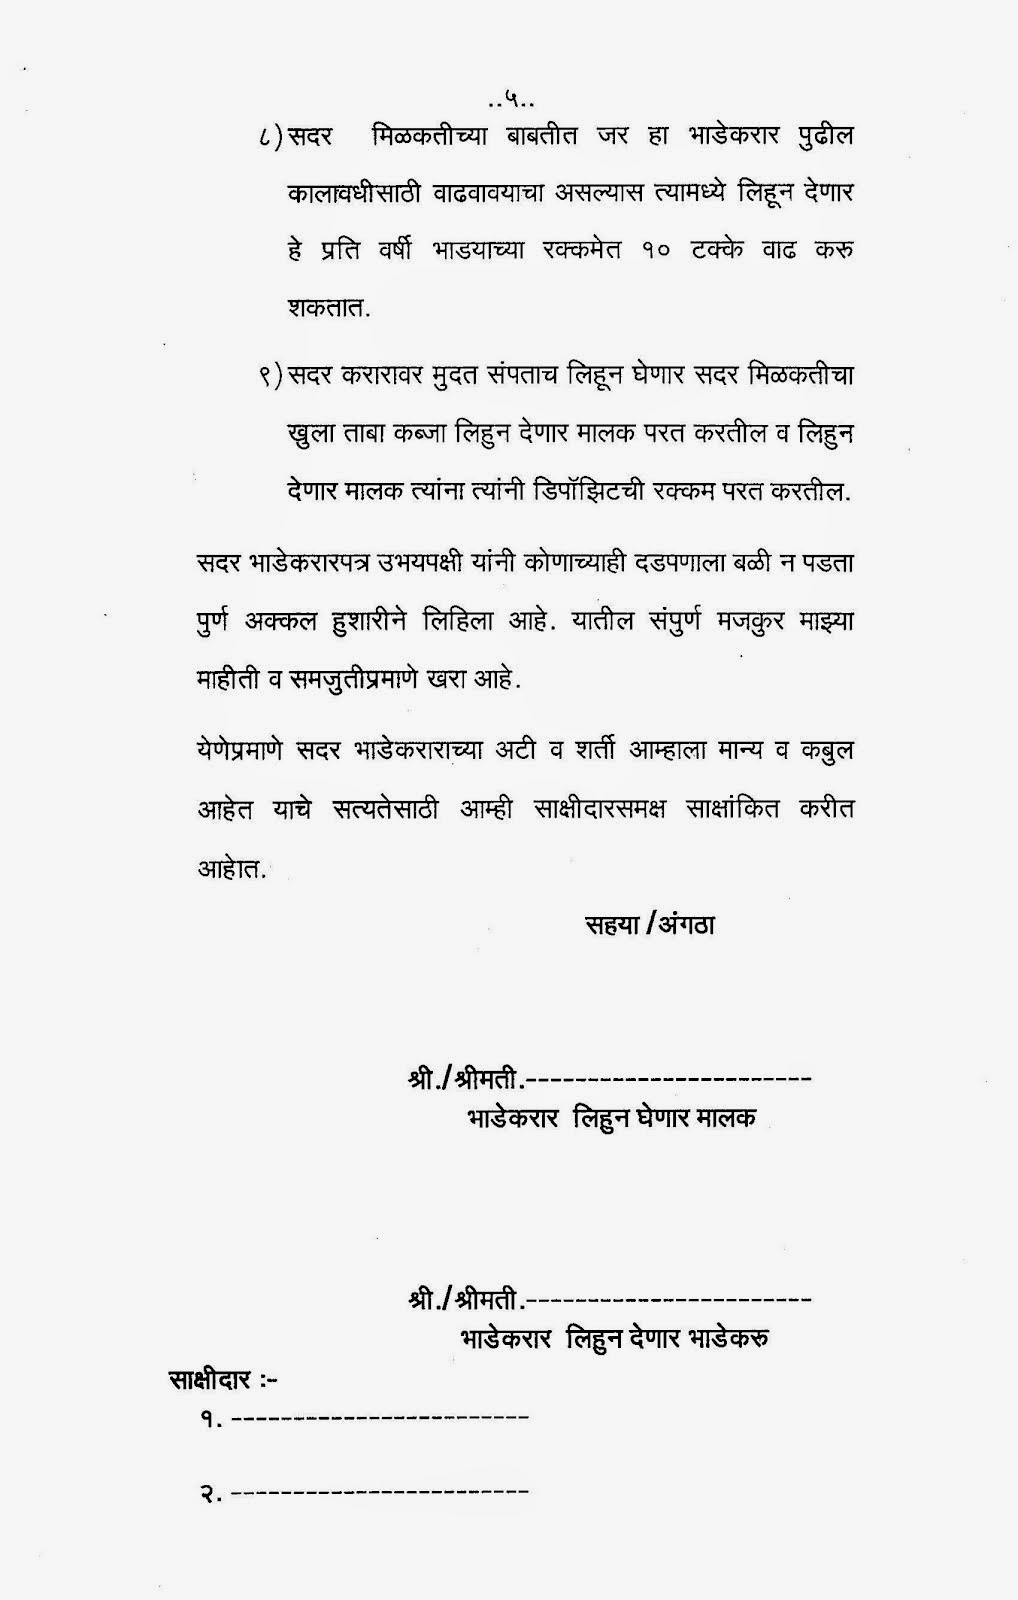 Rent Agreement format in Marathi – Format for Agreement